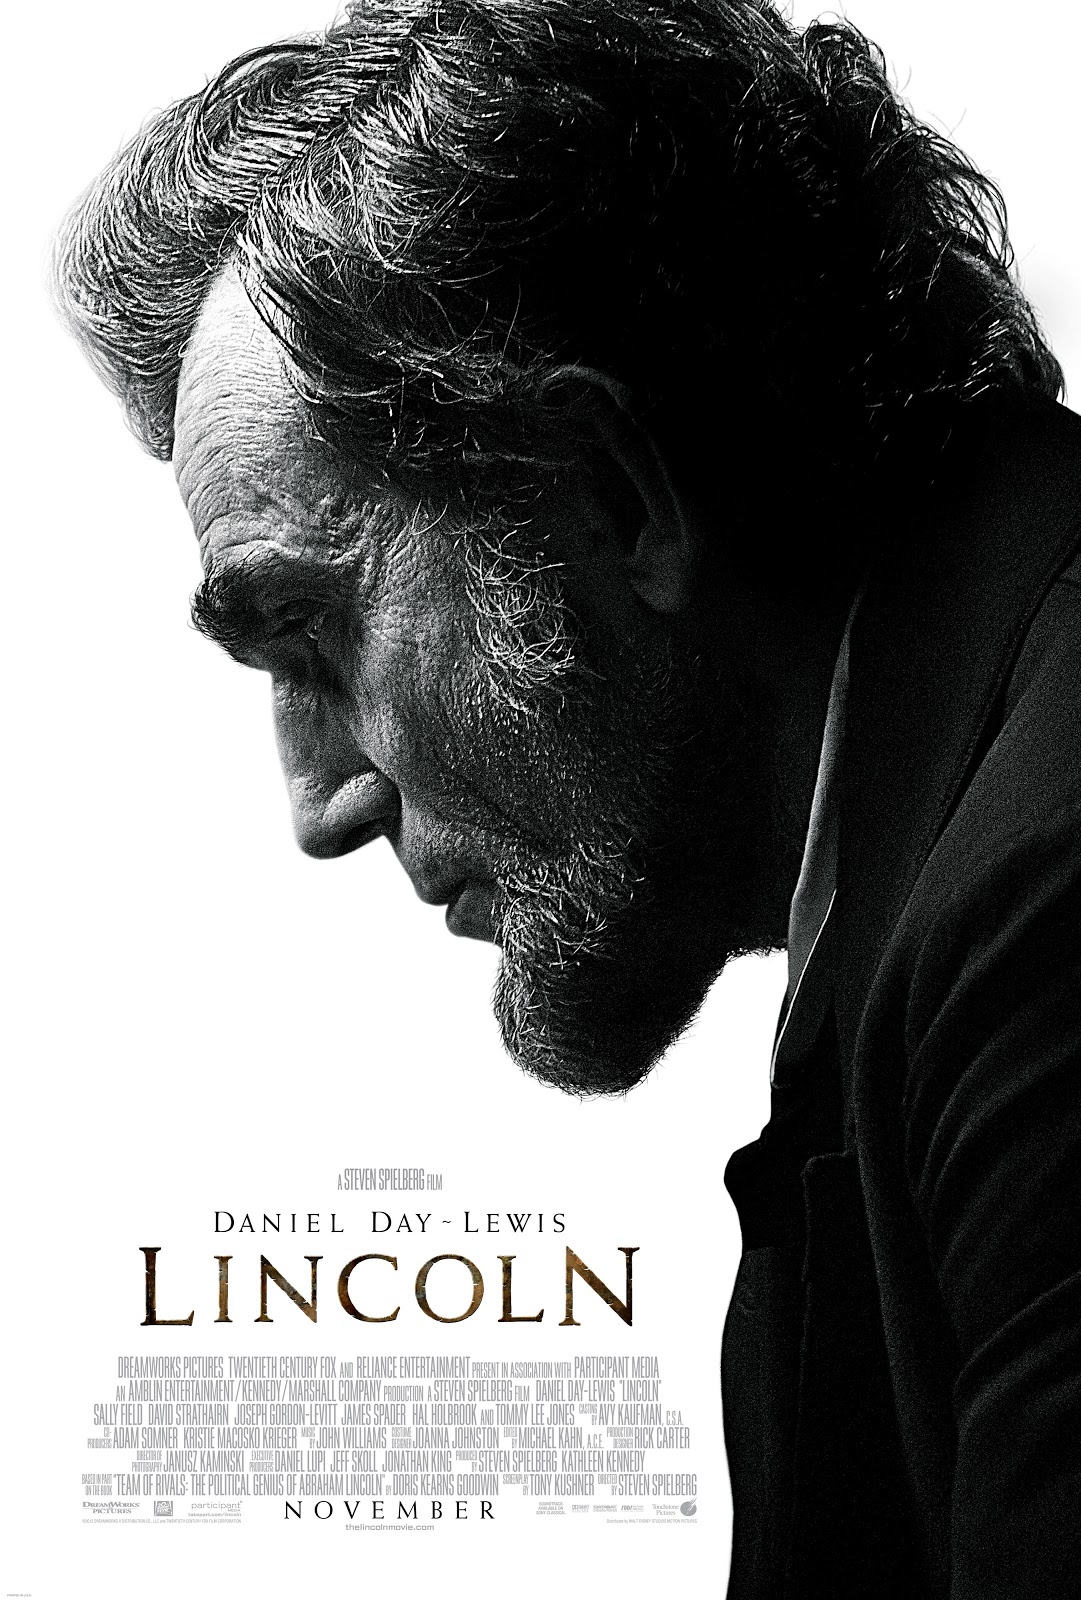 http://2.bp.blogspot.com/-_AY1HXj_MJE/UMn40qraHJI/AAAAAAAAEt4/D9y75S2J5FA/s1600/lincoln-official-movie-poster-2012.jpg